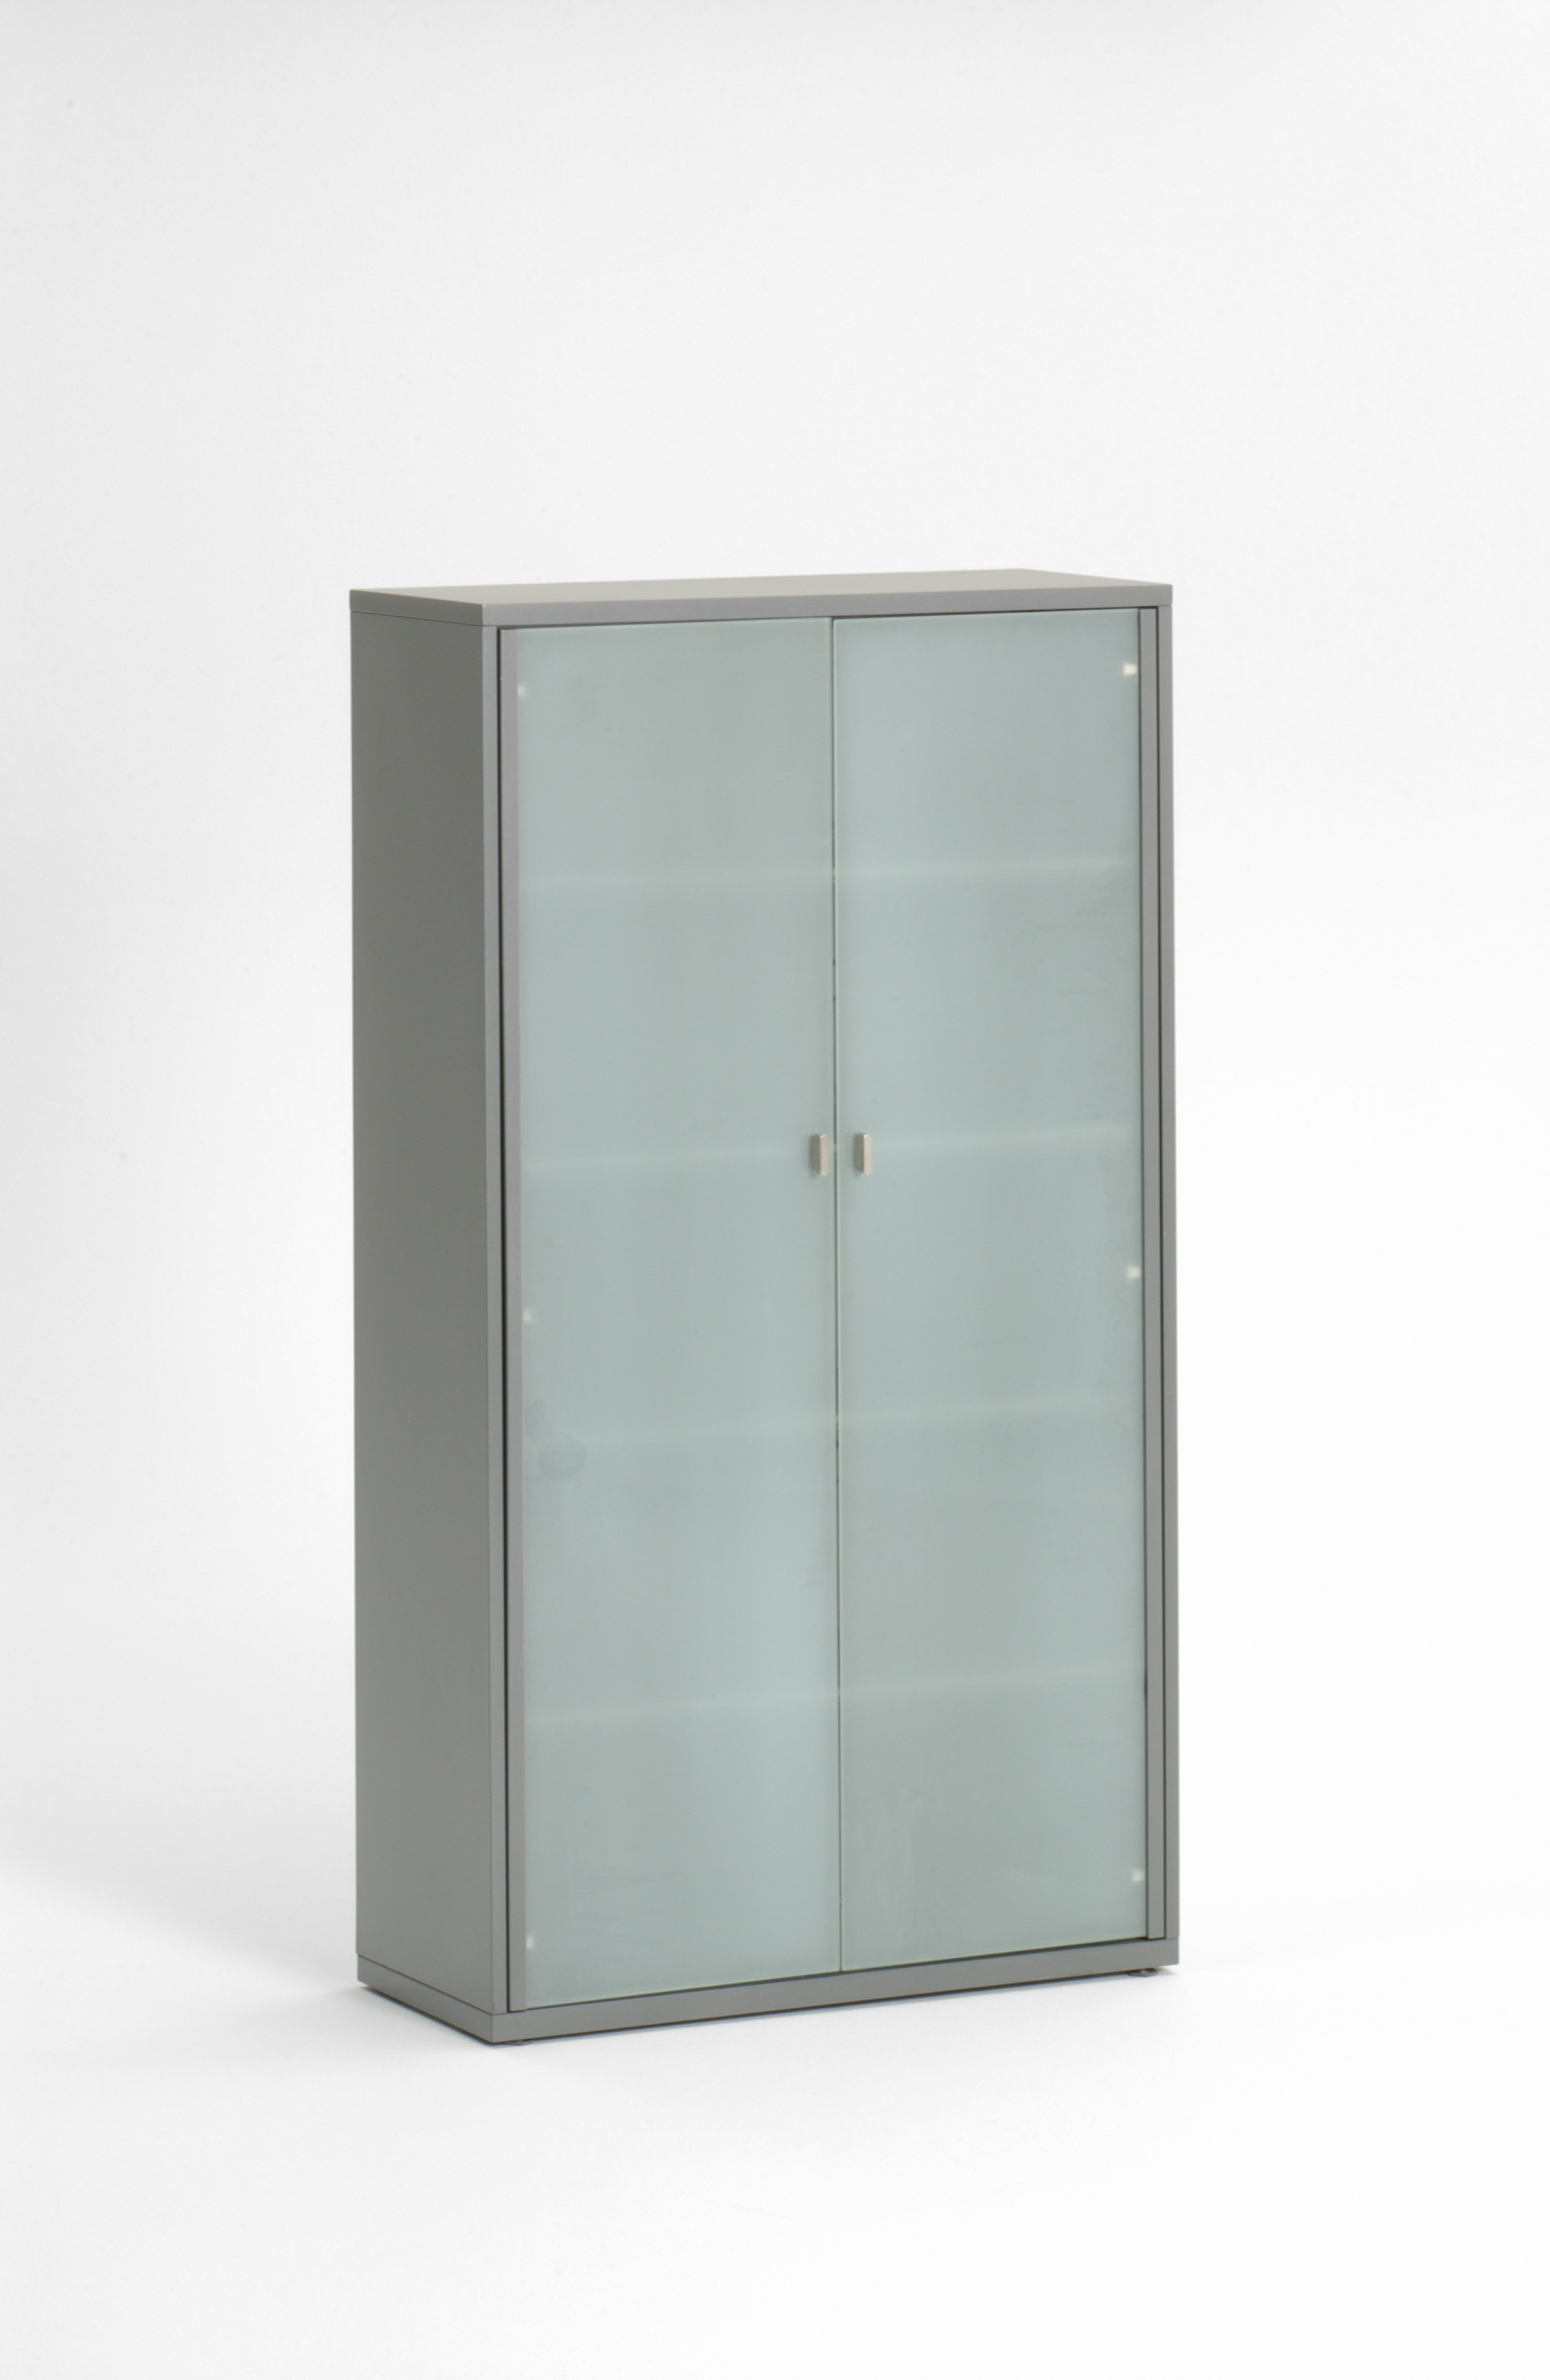 Universal Storage with glass front option